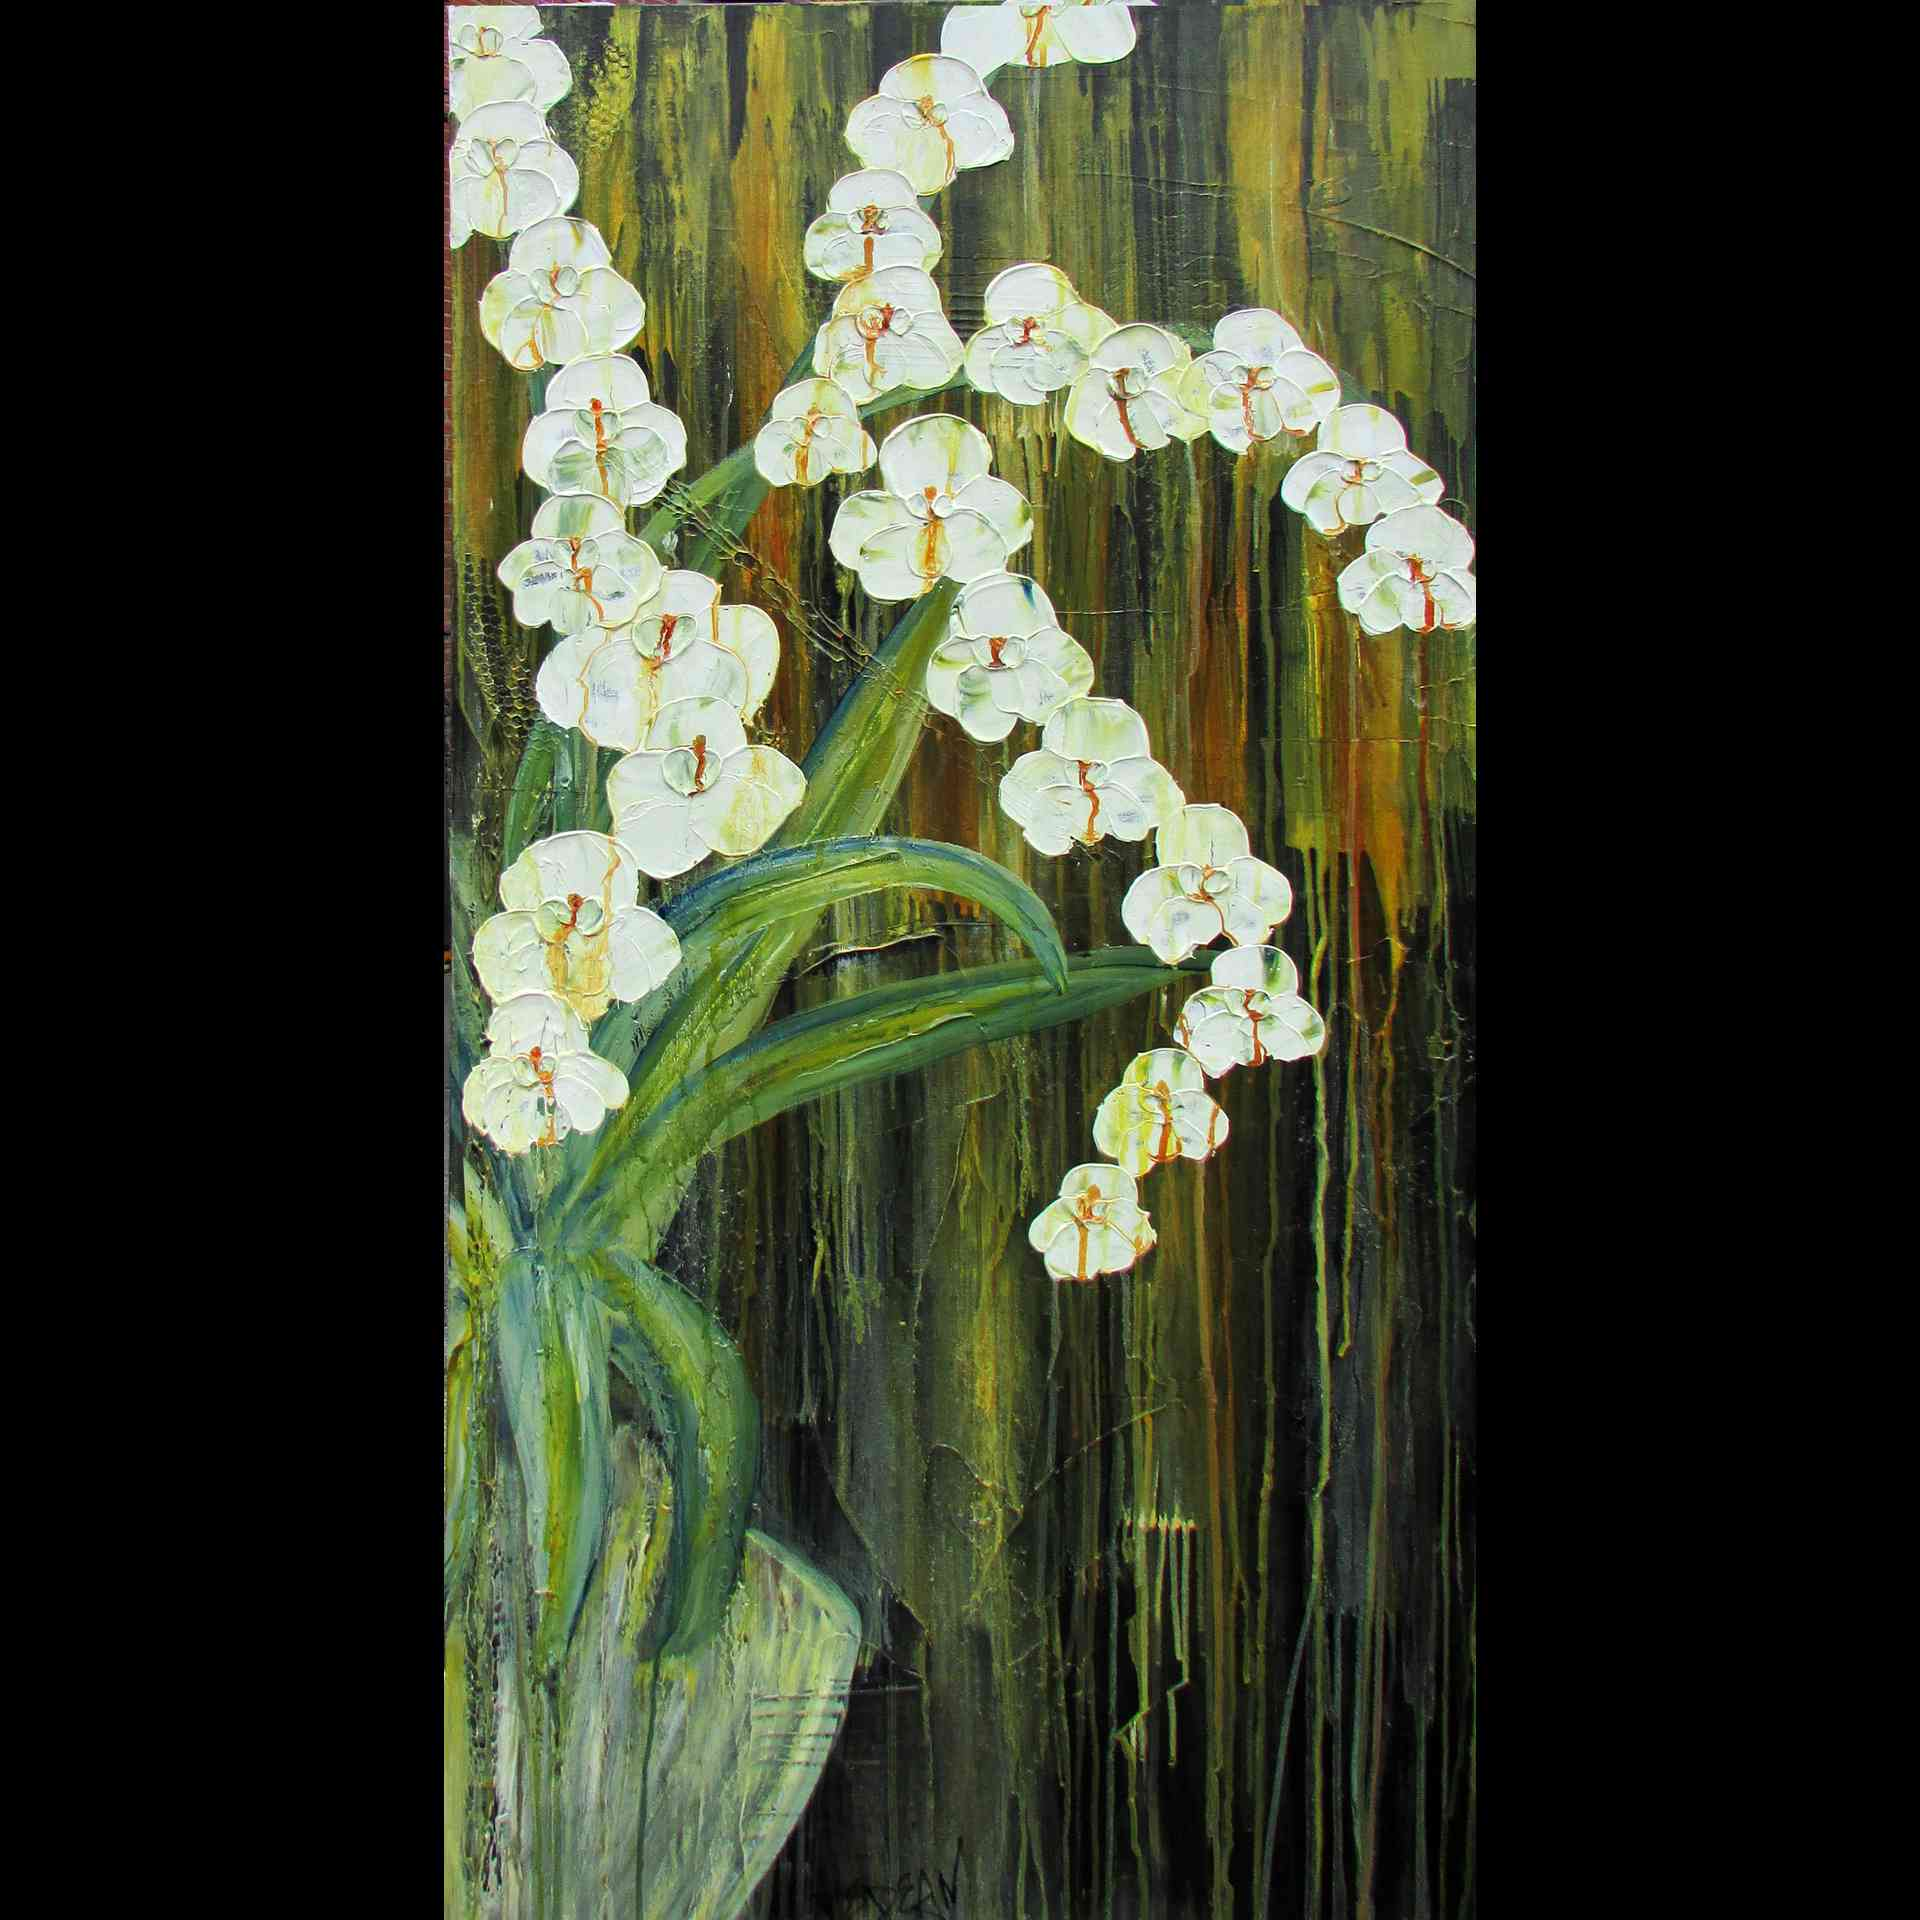 Orchids_in_a_Vase_13-0001.jpg